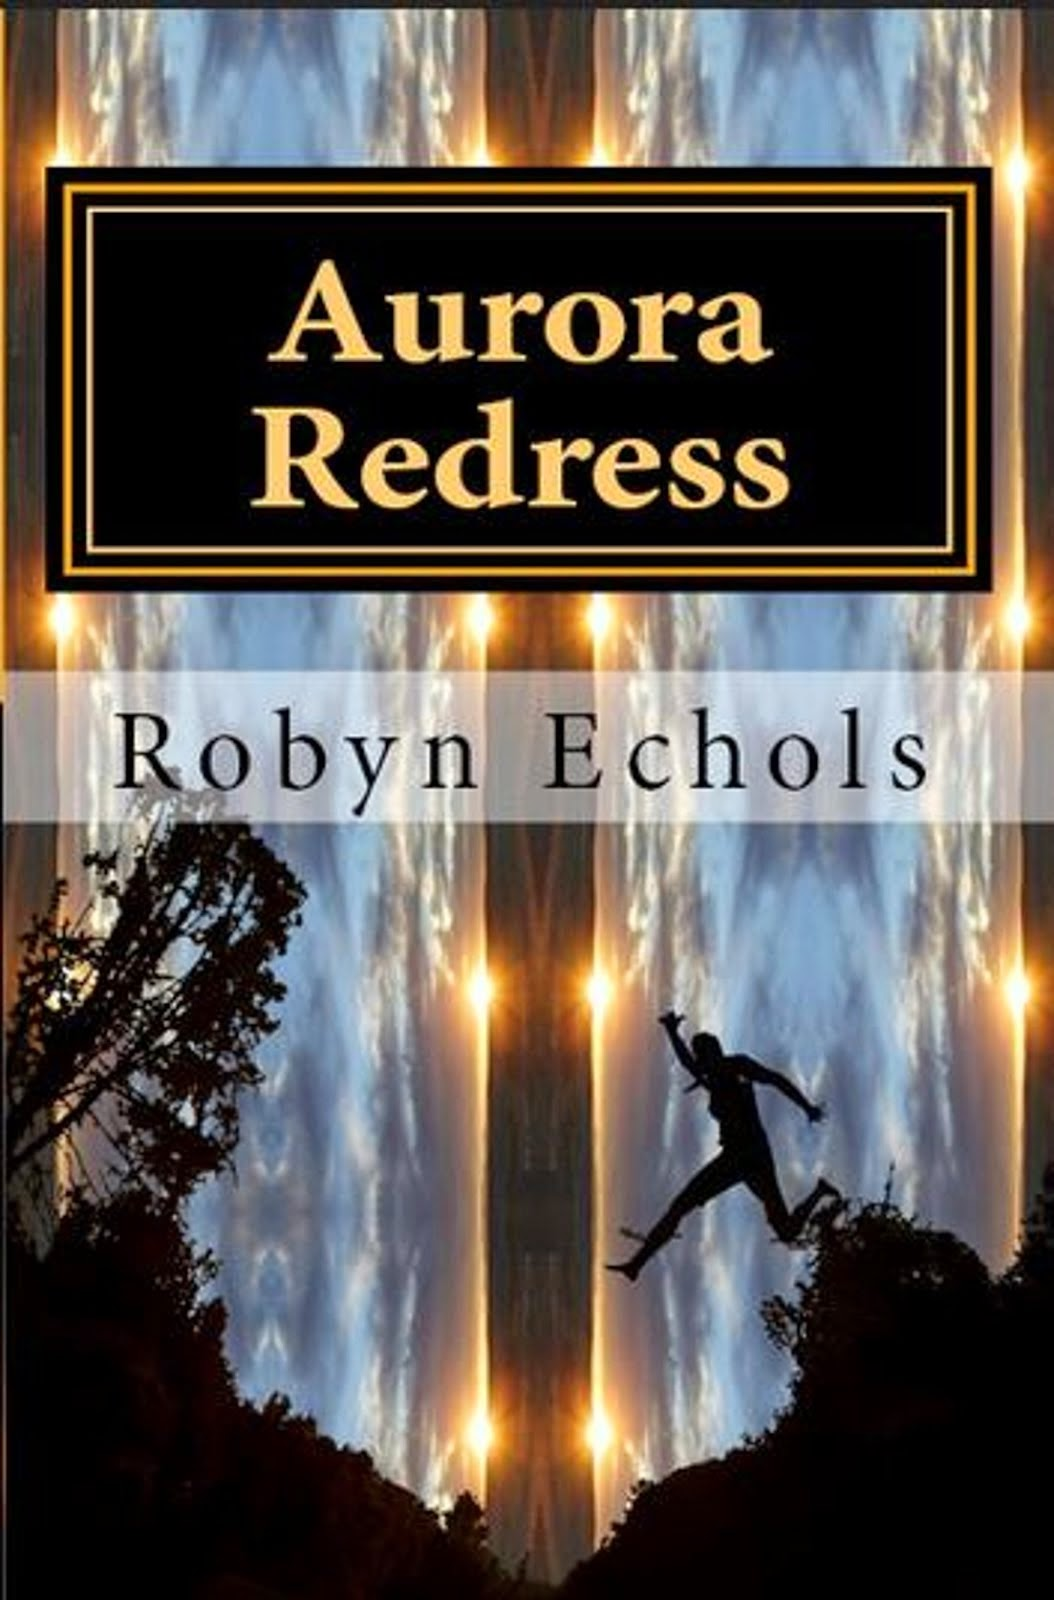 Aurora Redress on Amazon - click the book